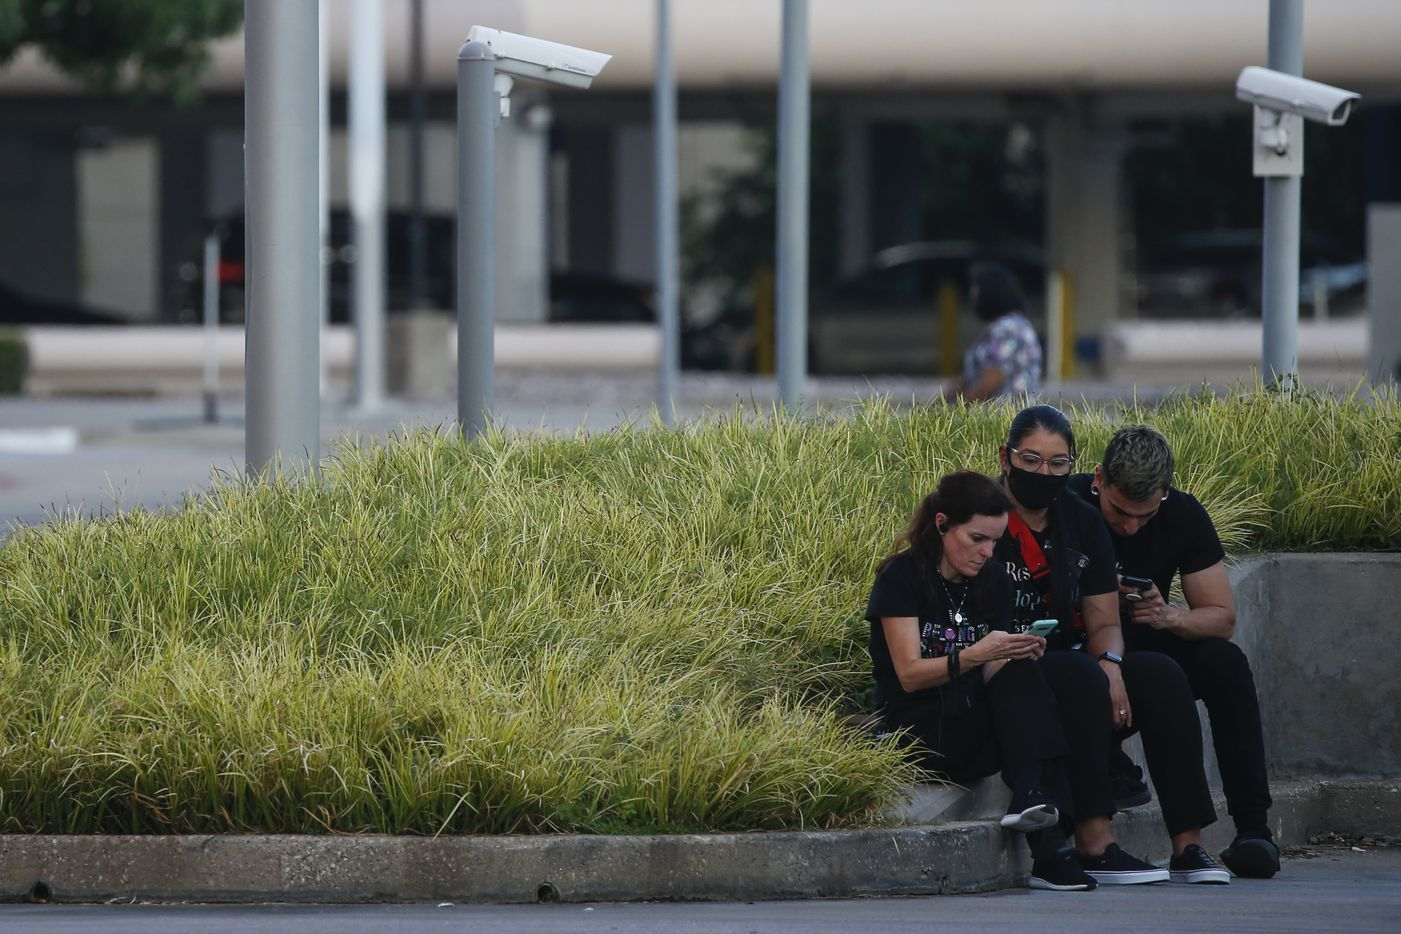 People wait outside of Galleria Mall, where a shooting was reported Tuesday, June 16, 2020 in Dallas.